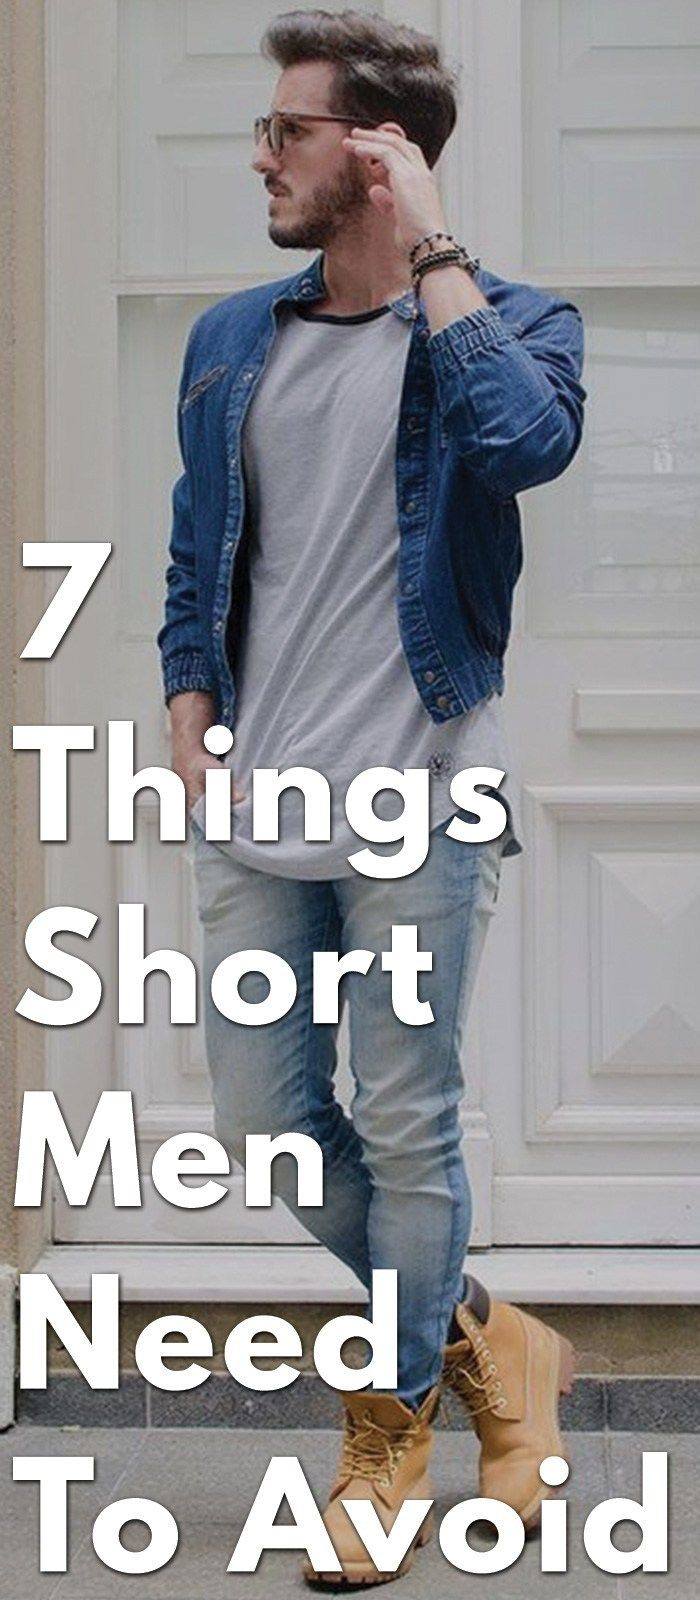 Things to look for in a good man